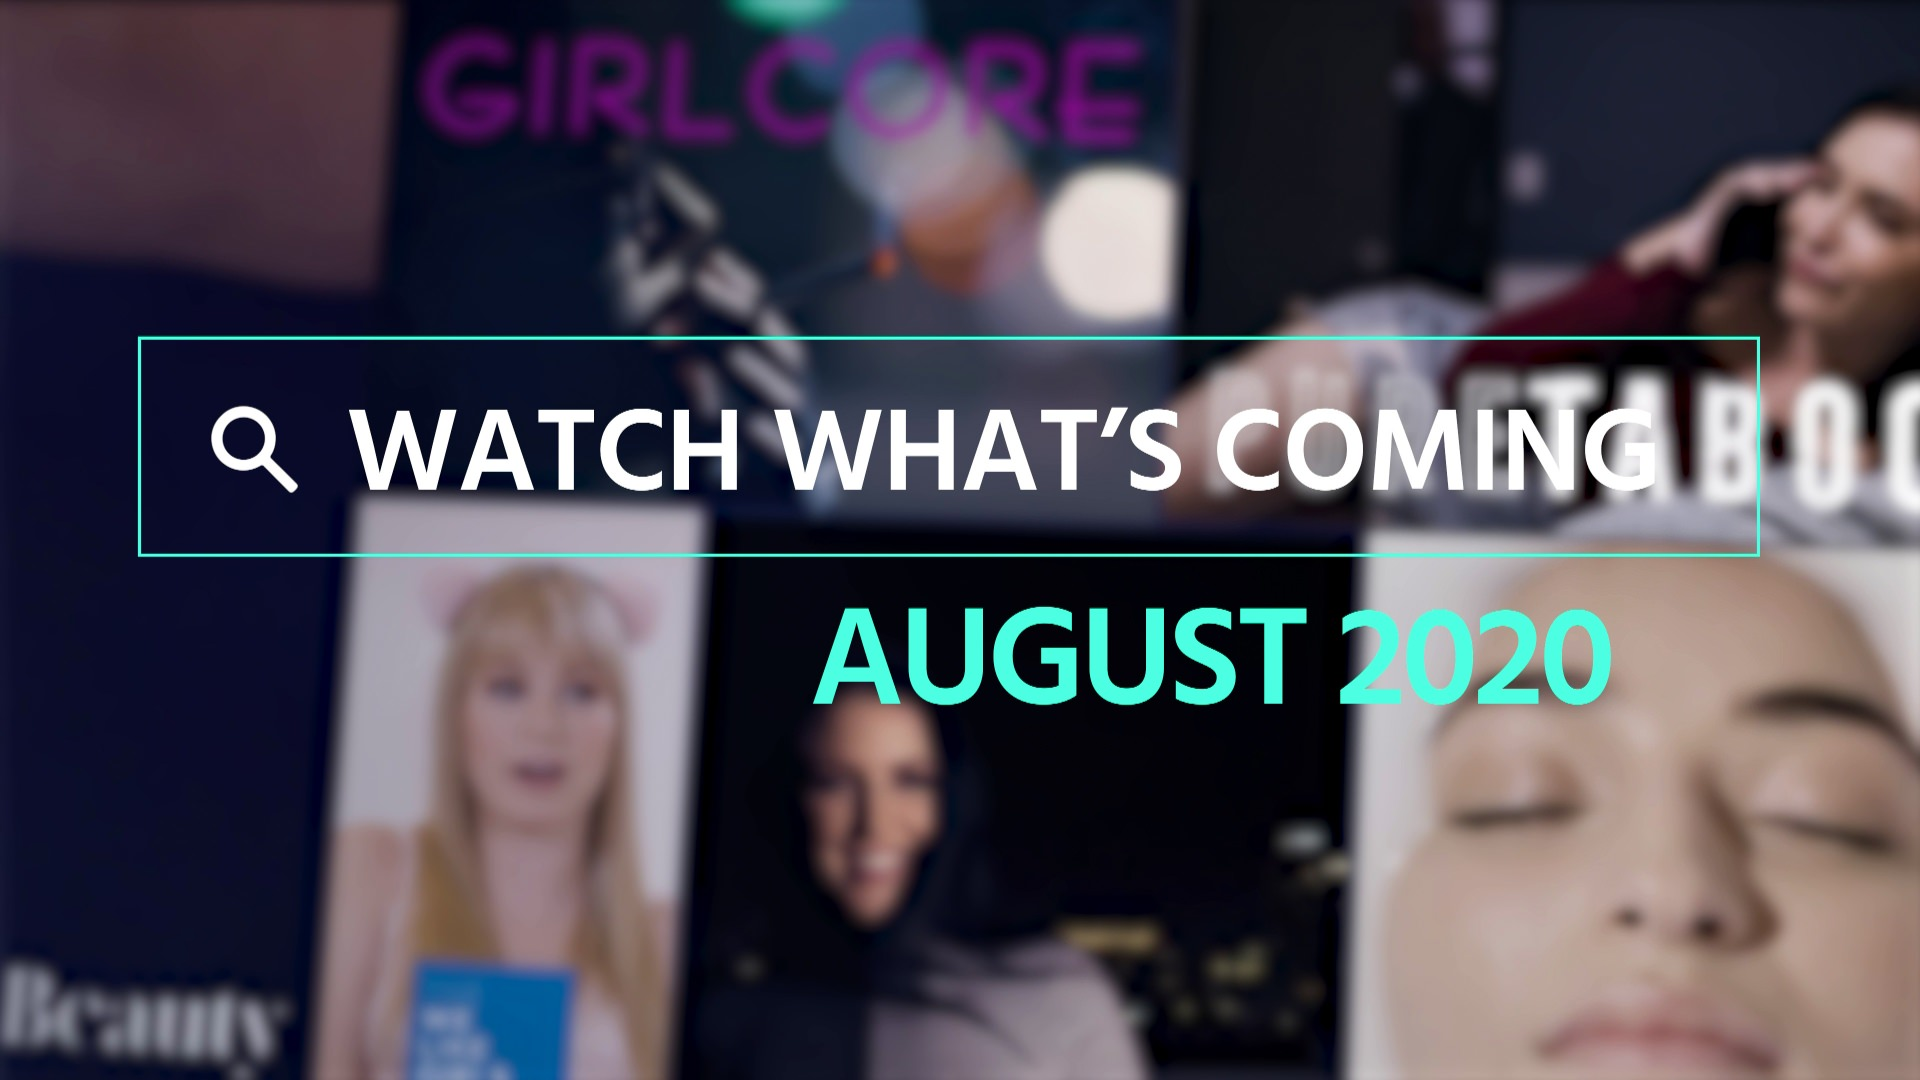 Watch What's Coming | August 2020 1